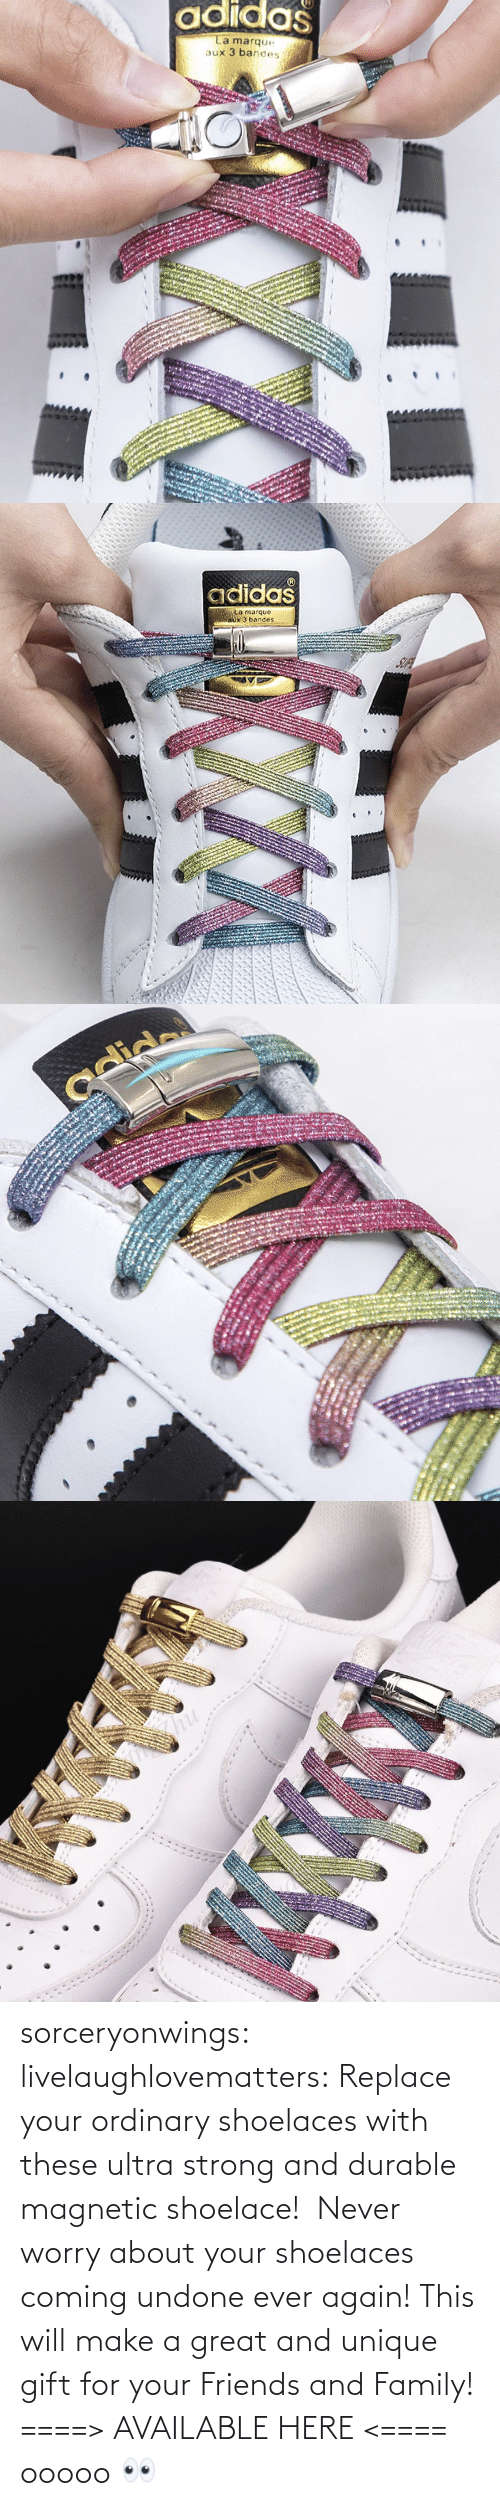 worry: sorceryonwings:  livelaughlovematters:  Replace your ordinary shoelaces with these ultra strong and durable magnetic shoelace! Never worry about your shoelaces coming undone ever again! This will make a great and unique gift for your Friends and Family! ====> AVAILABLE HERE <====    ooooo 👀